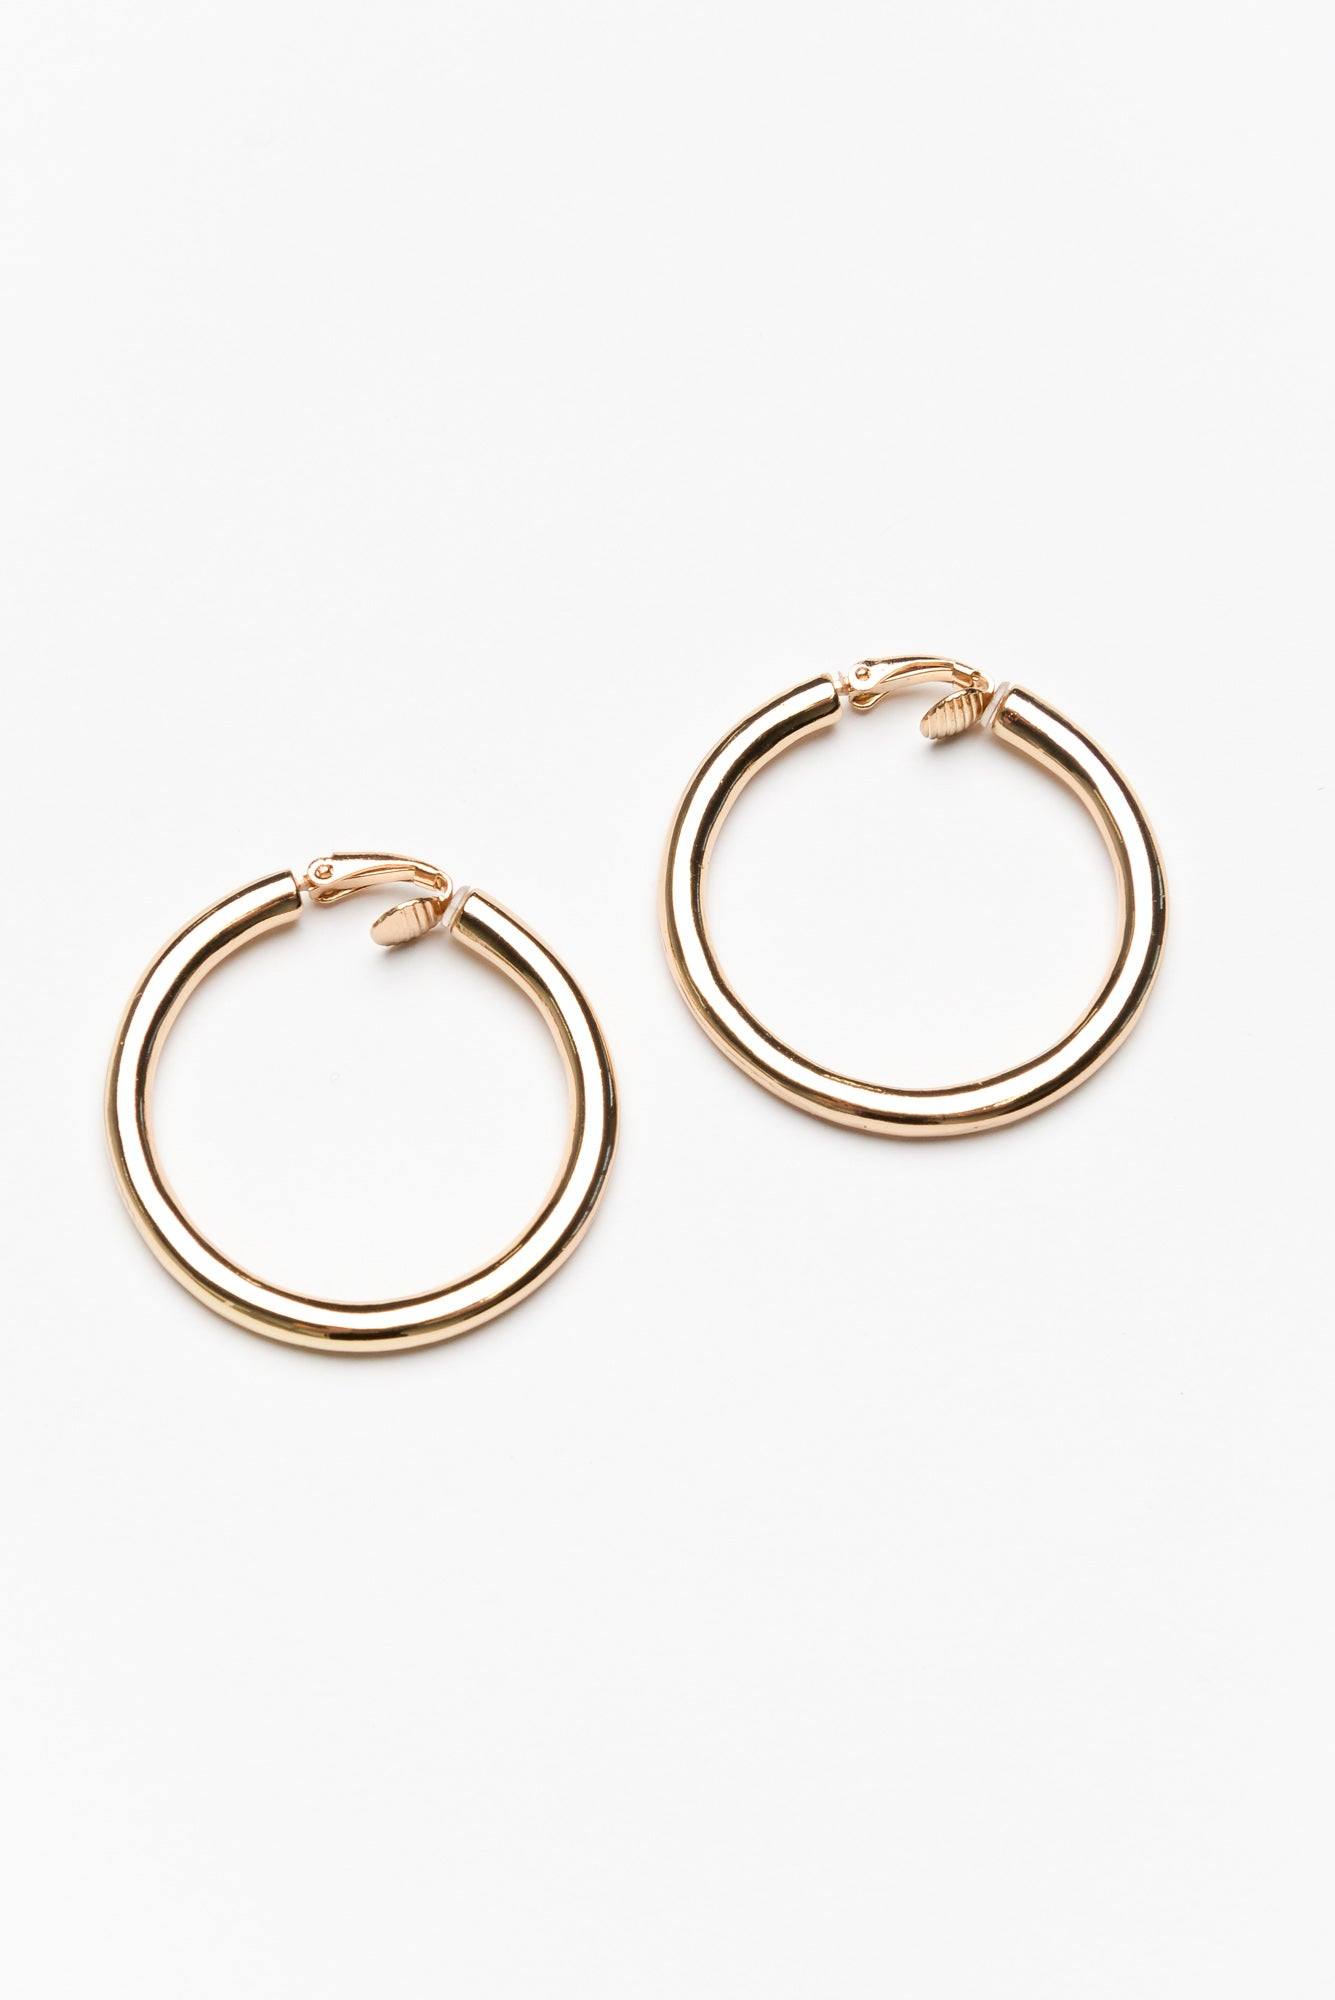 Amalfi Gold Tube Hoop Earring